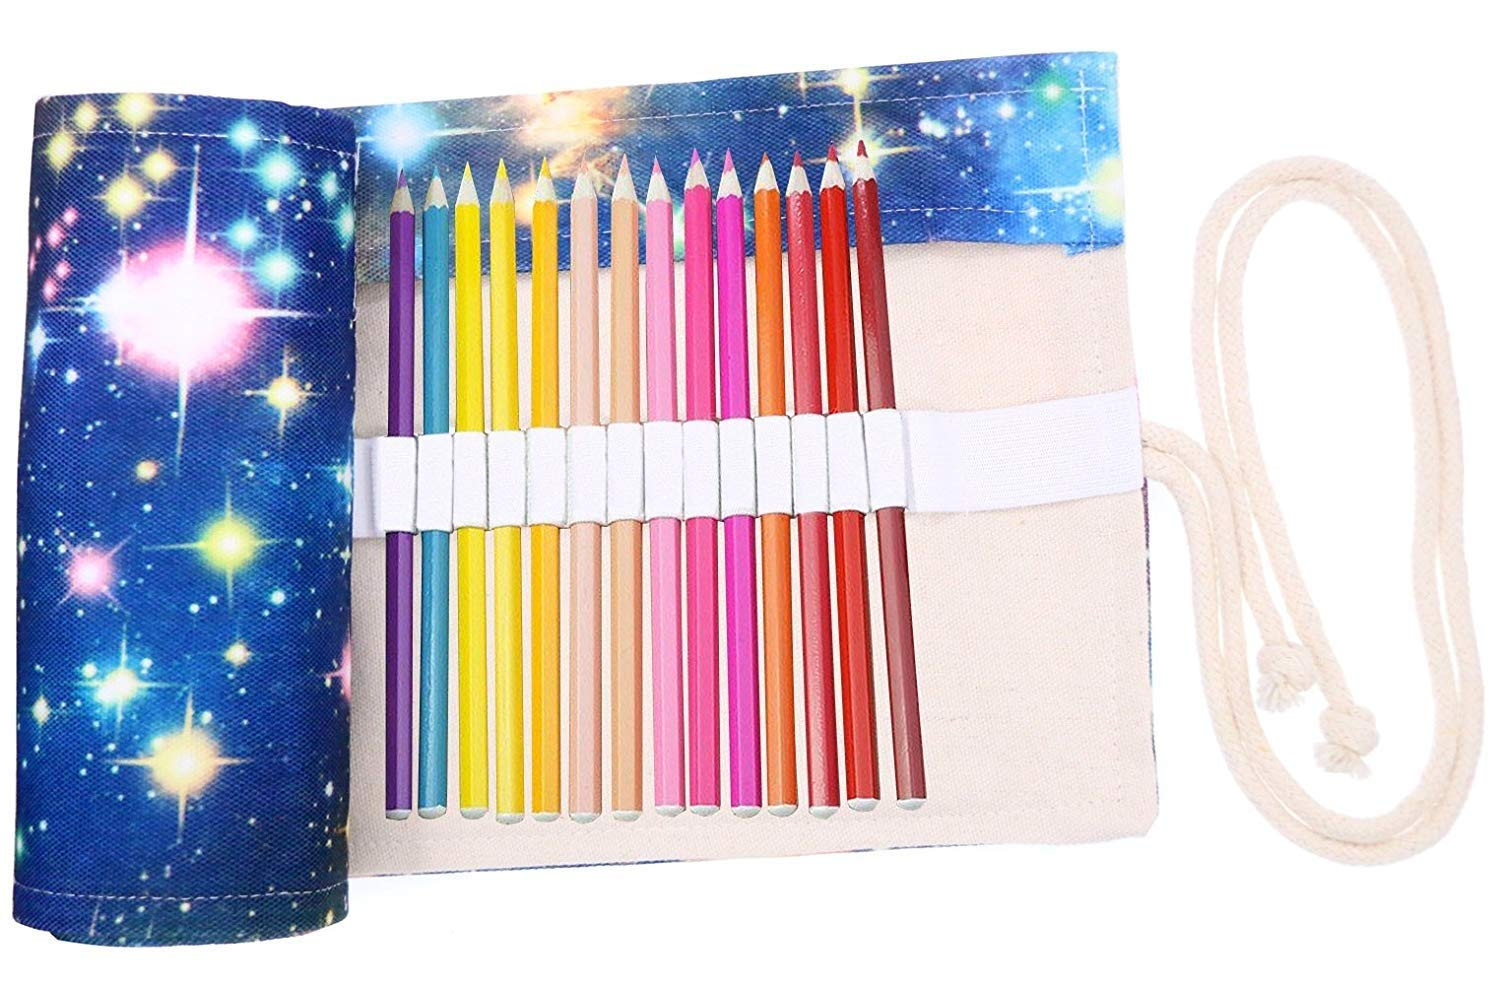 FridCy Colored Pencils Case Wrap Roll Up Holder Pouch for Artist Travel Drawing Coloring Portable Canvas Storage Organizer for Ball Pens or Pencils (72 Holes, Star Universe) Pencil Case